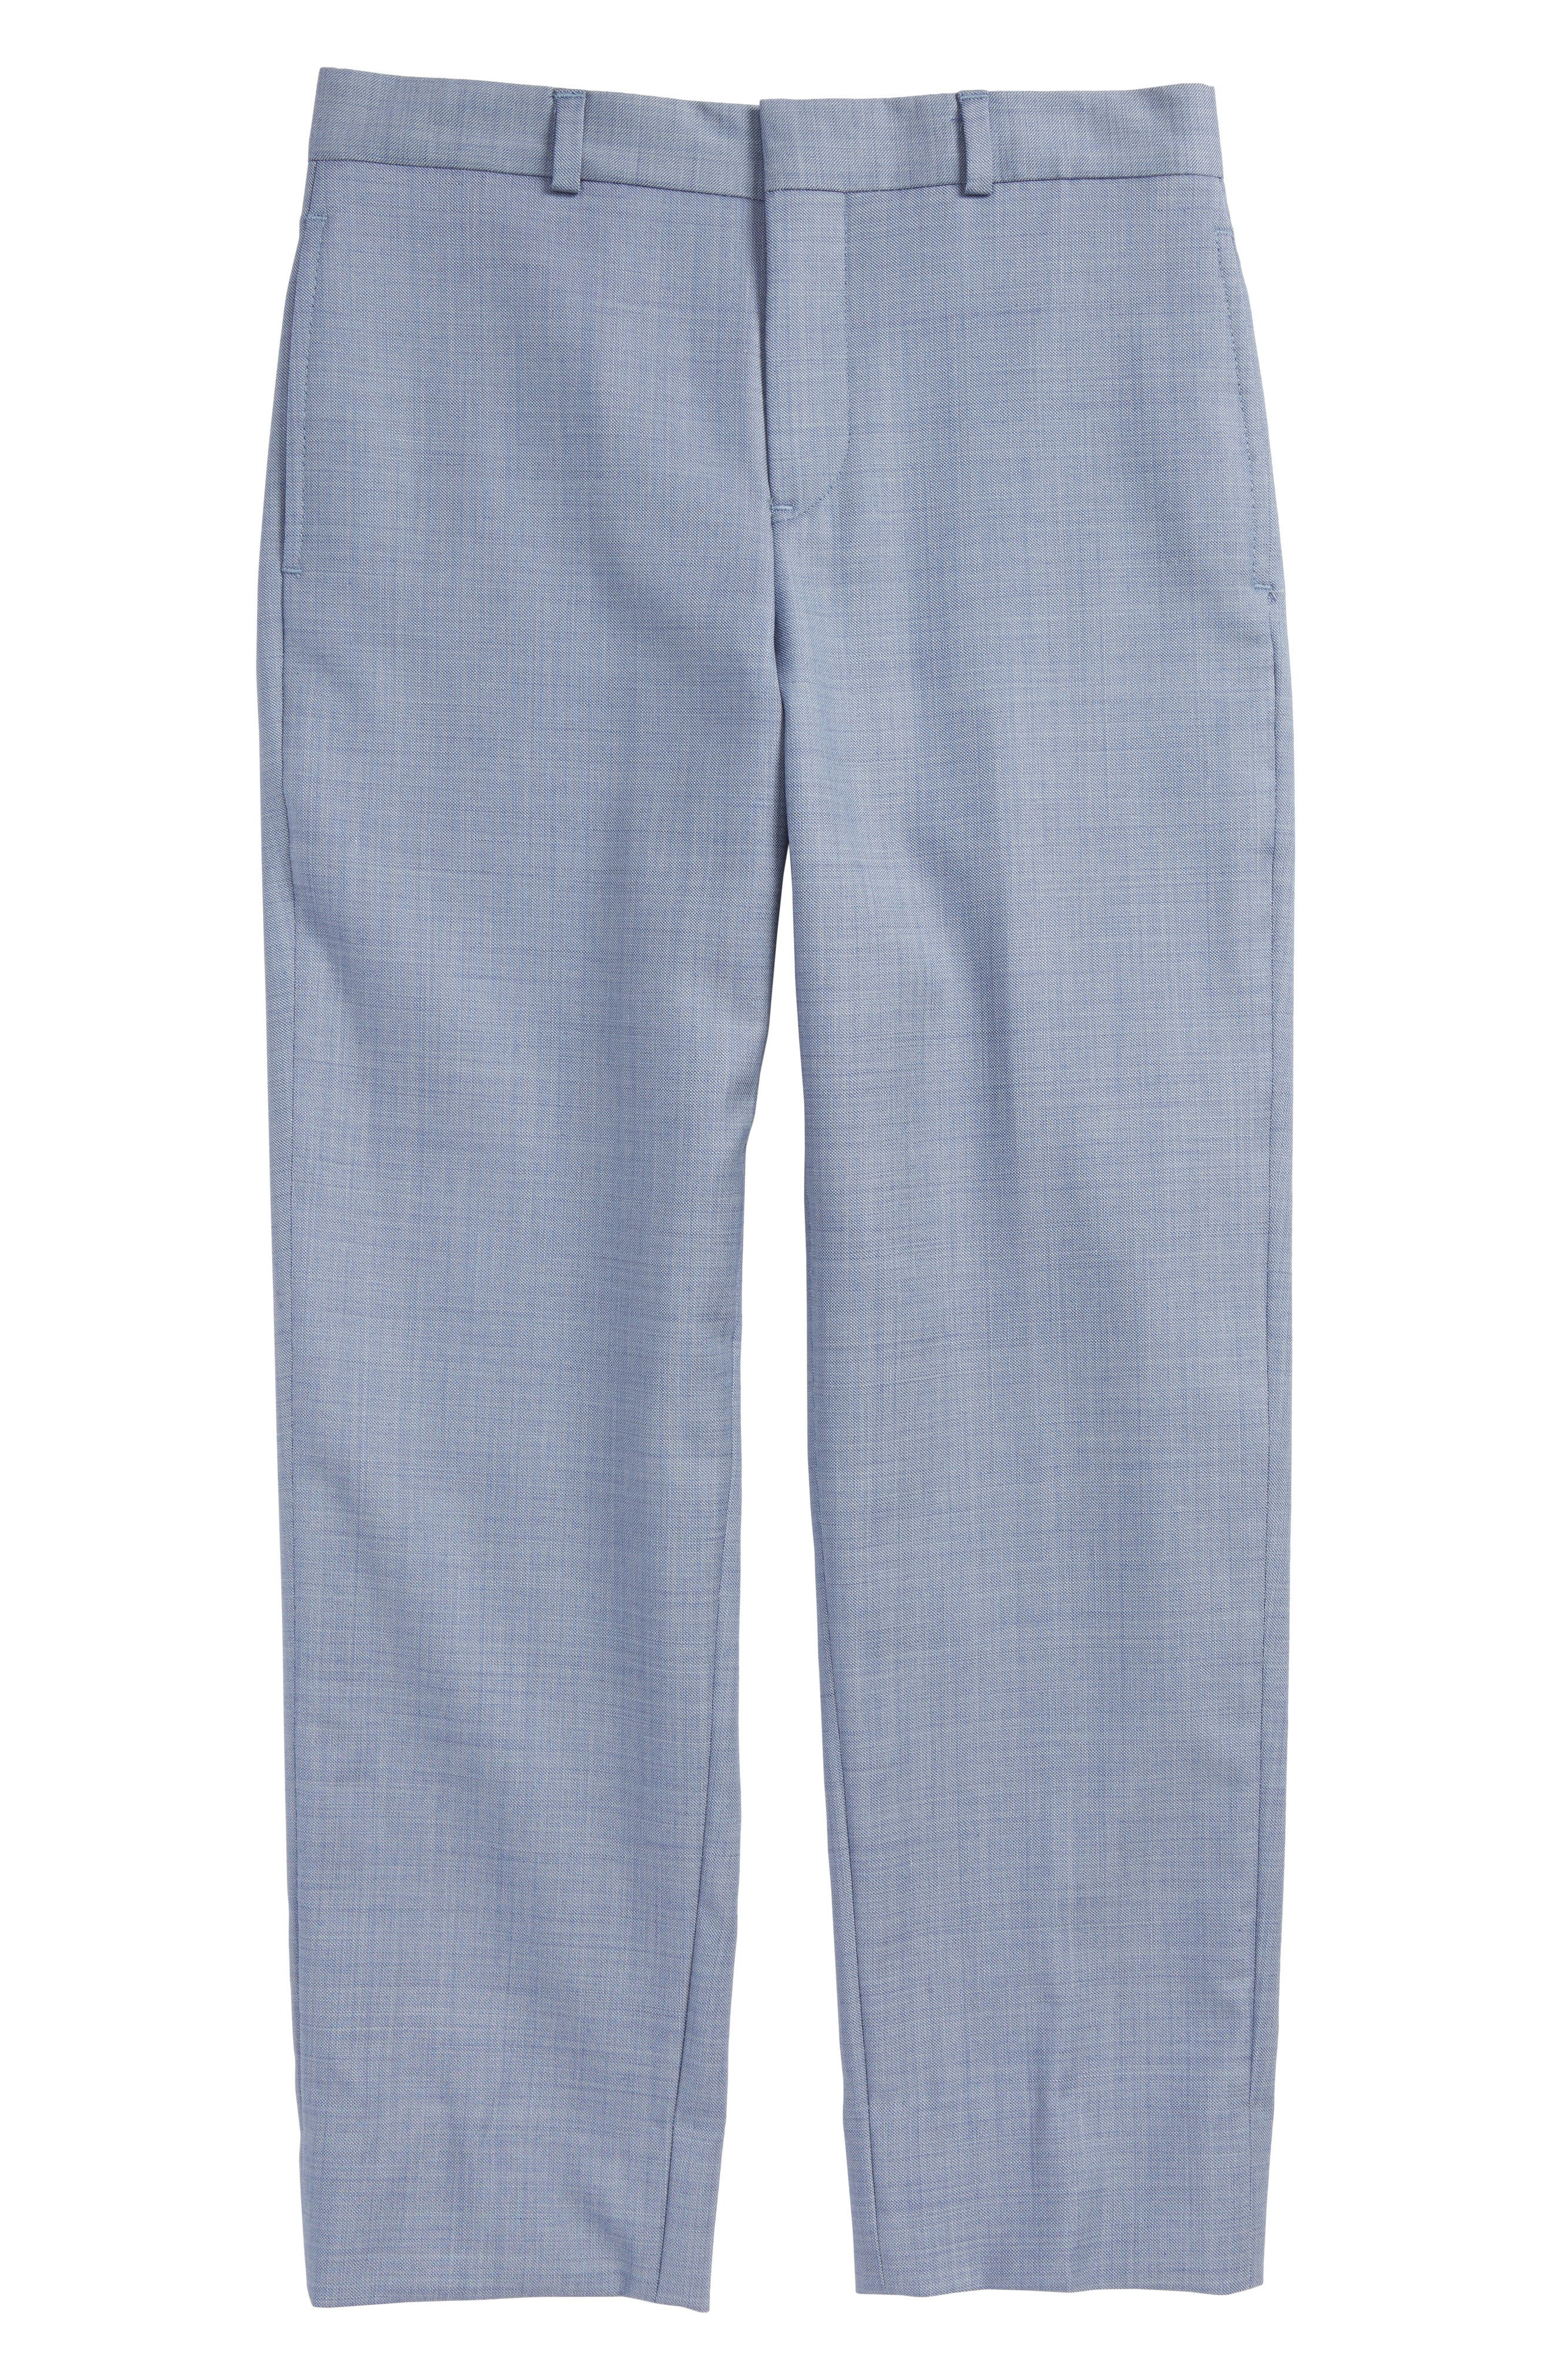 Alternate Image 1 Selected - JB Jr Flat Front Wool Trousers (Big Boys)